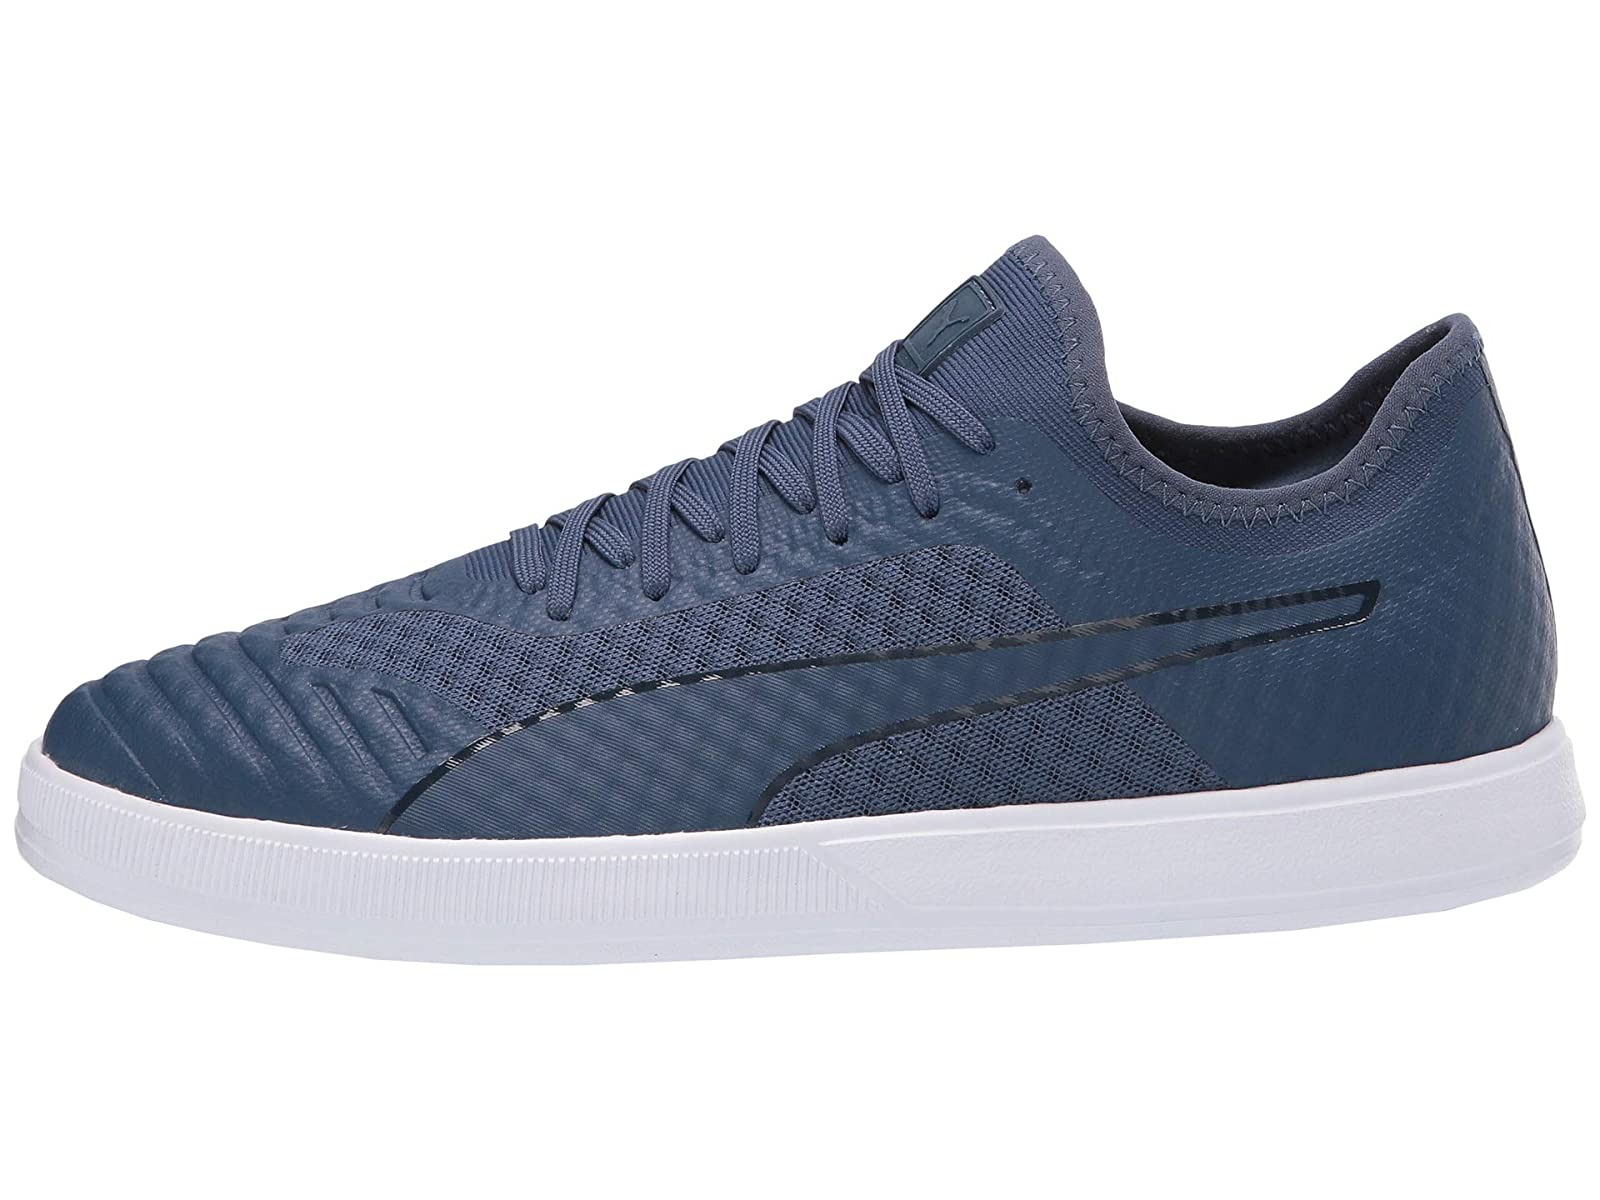 Man-039-s-Sneakers-amp-Athletic-Shoes-PUMA-365-Concrete-Lite thumbnail 5